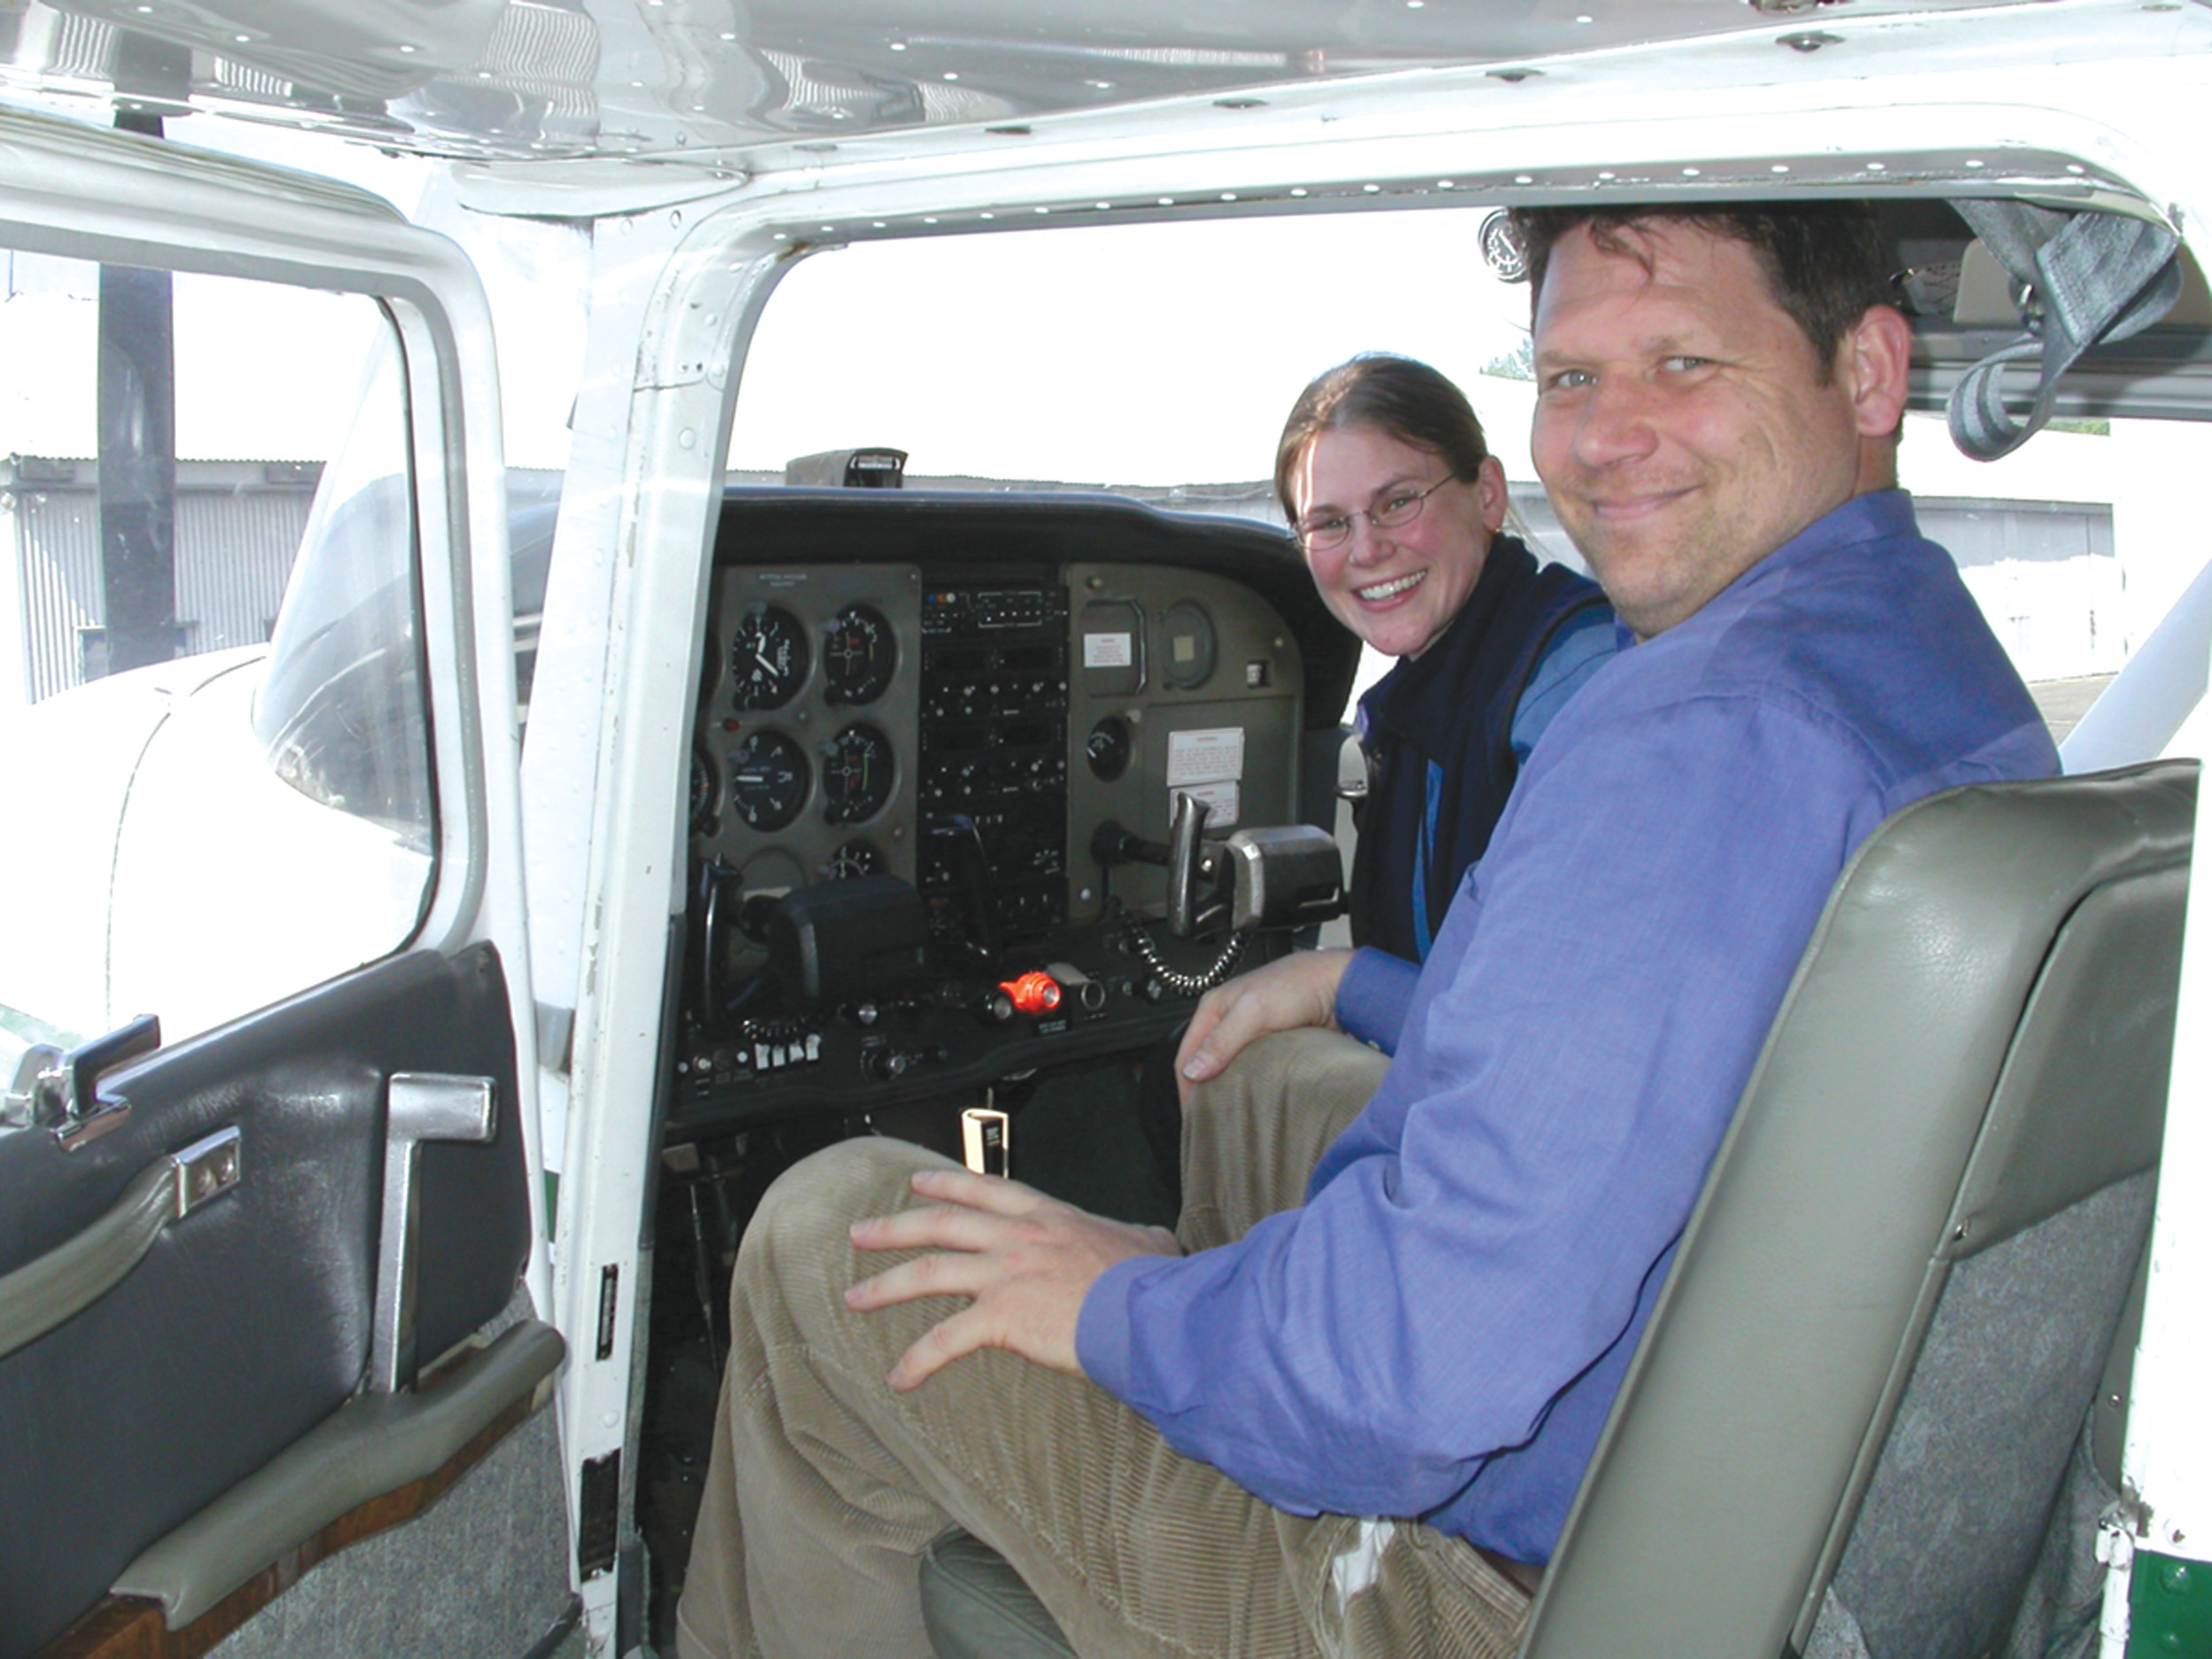 Deaf Pilot Could Become First in Washington to Earn Pilot's License